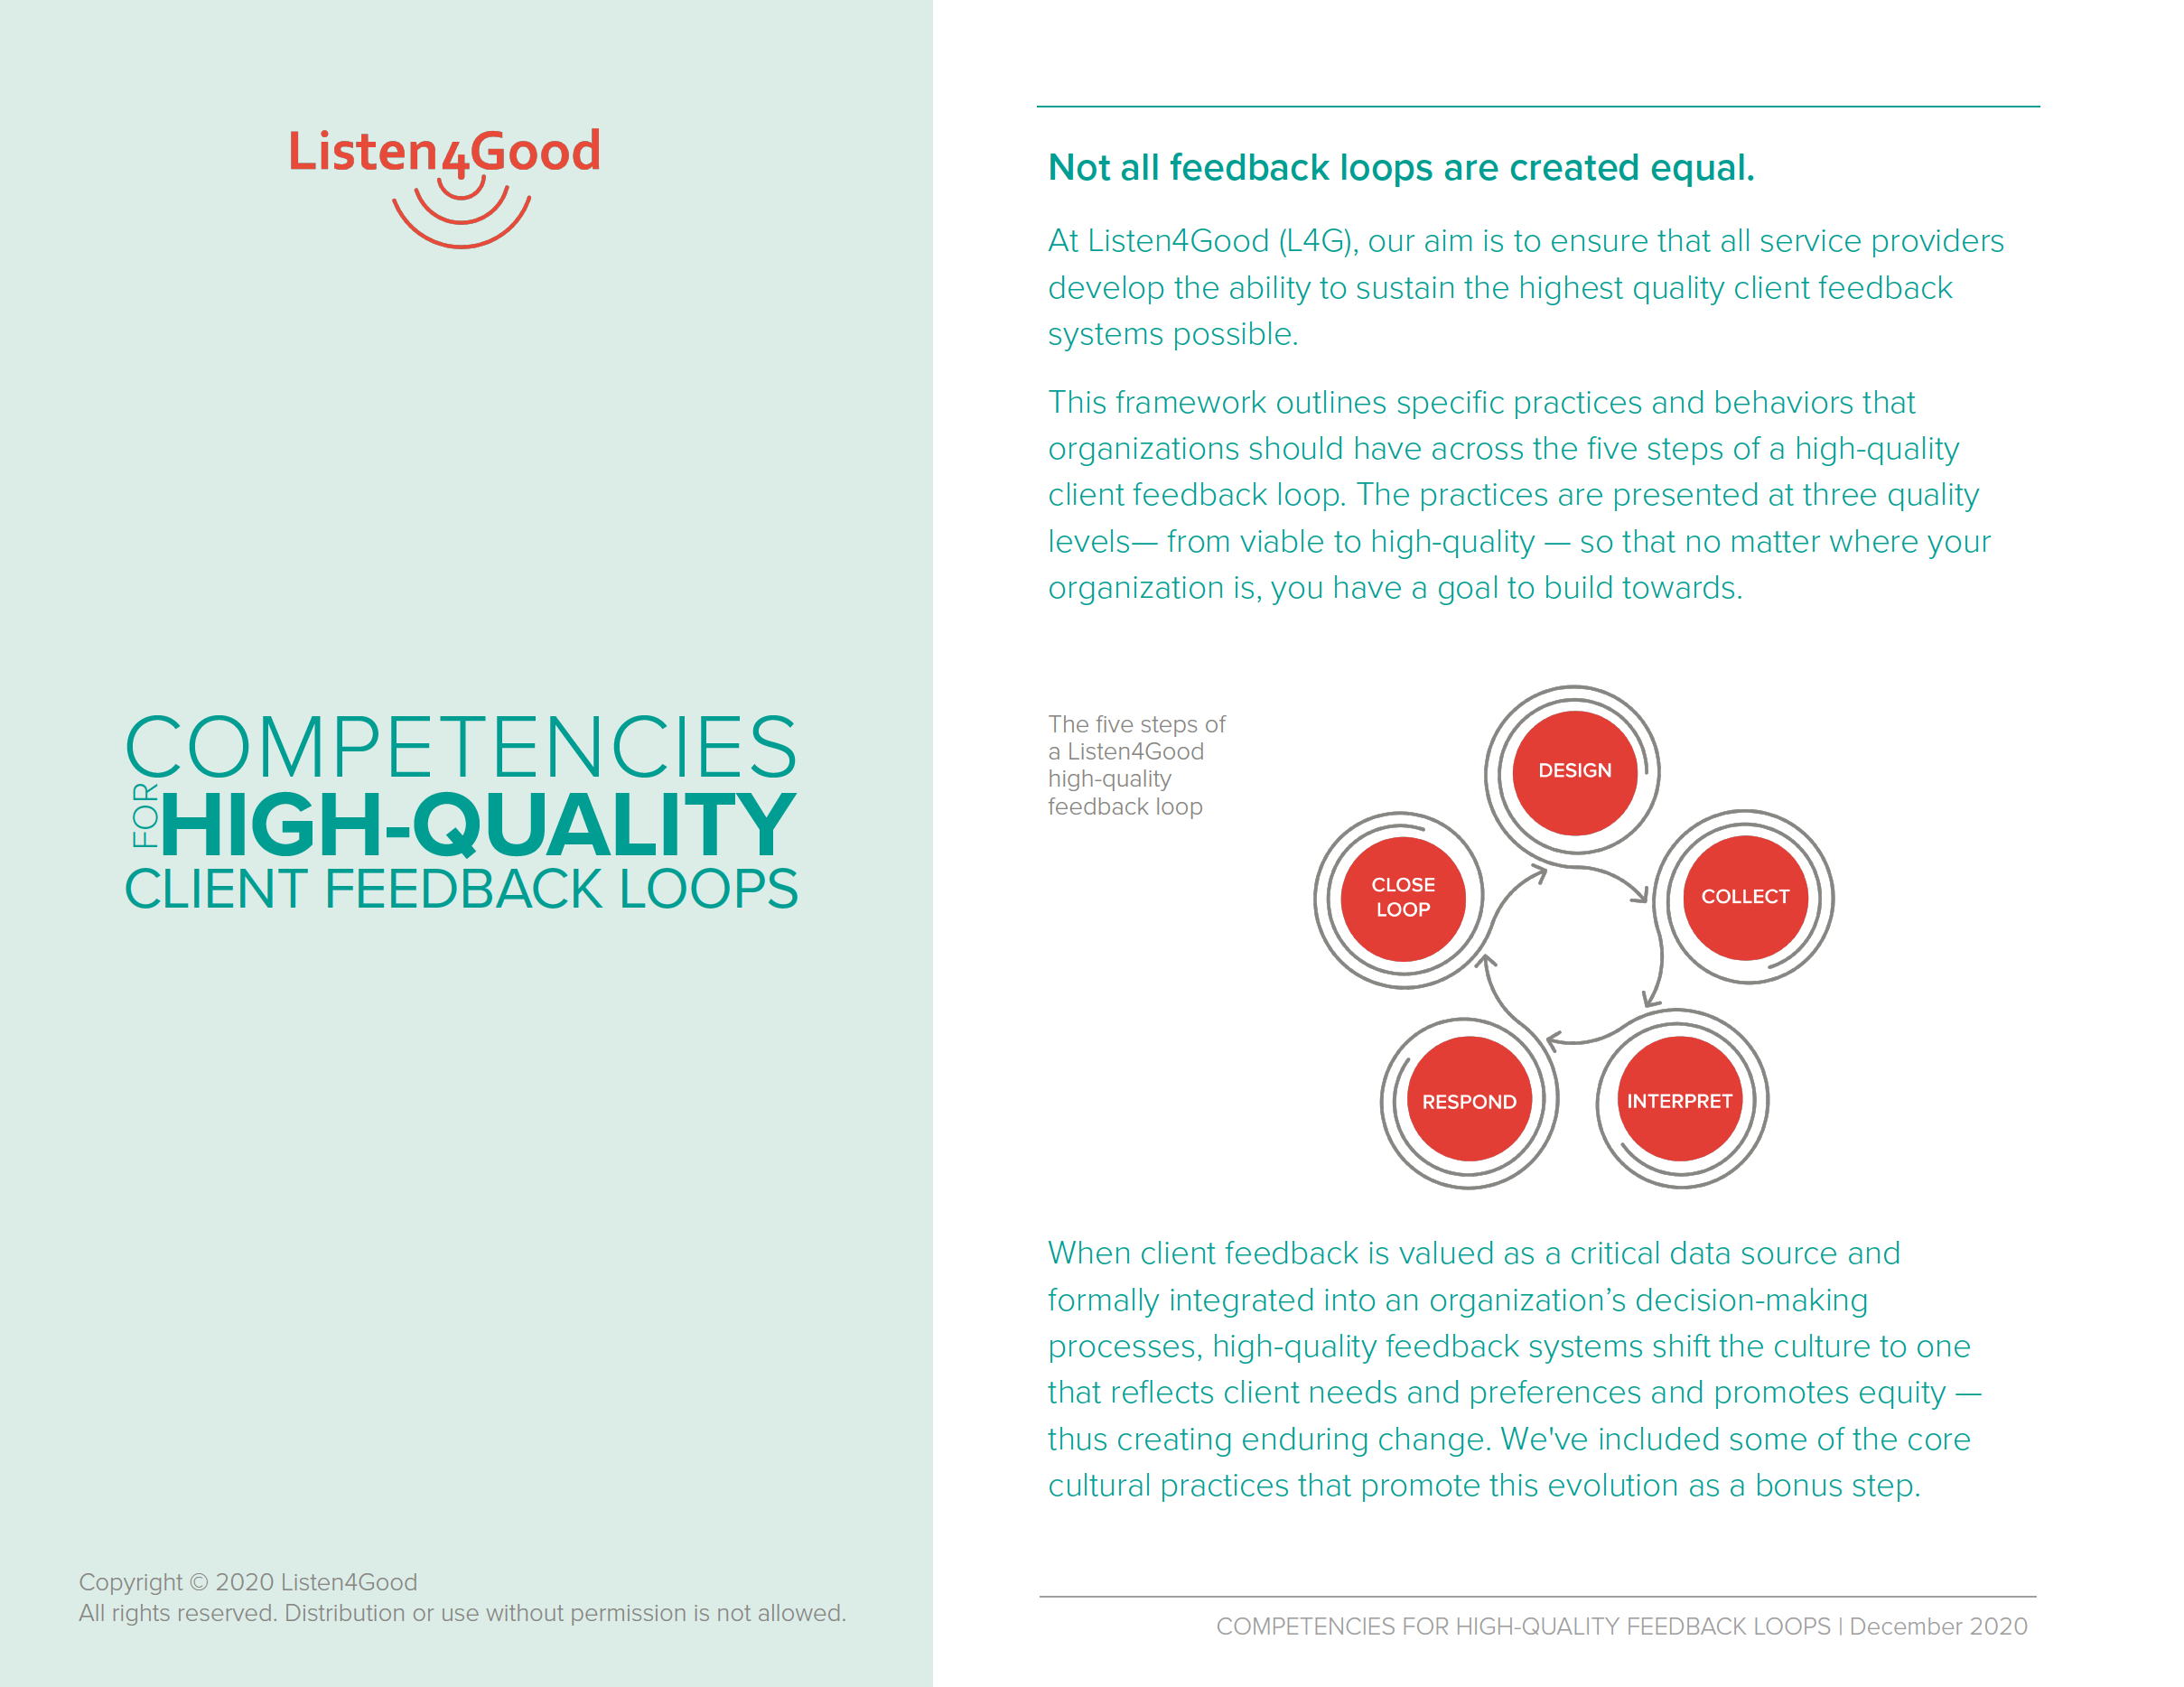 listen4good competencies for high-quality client feedback loops hero image